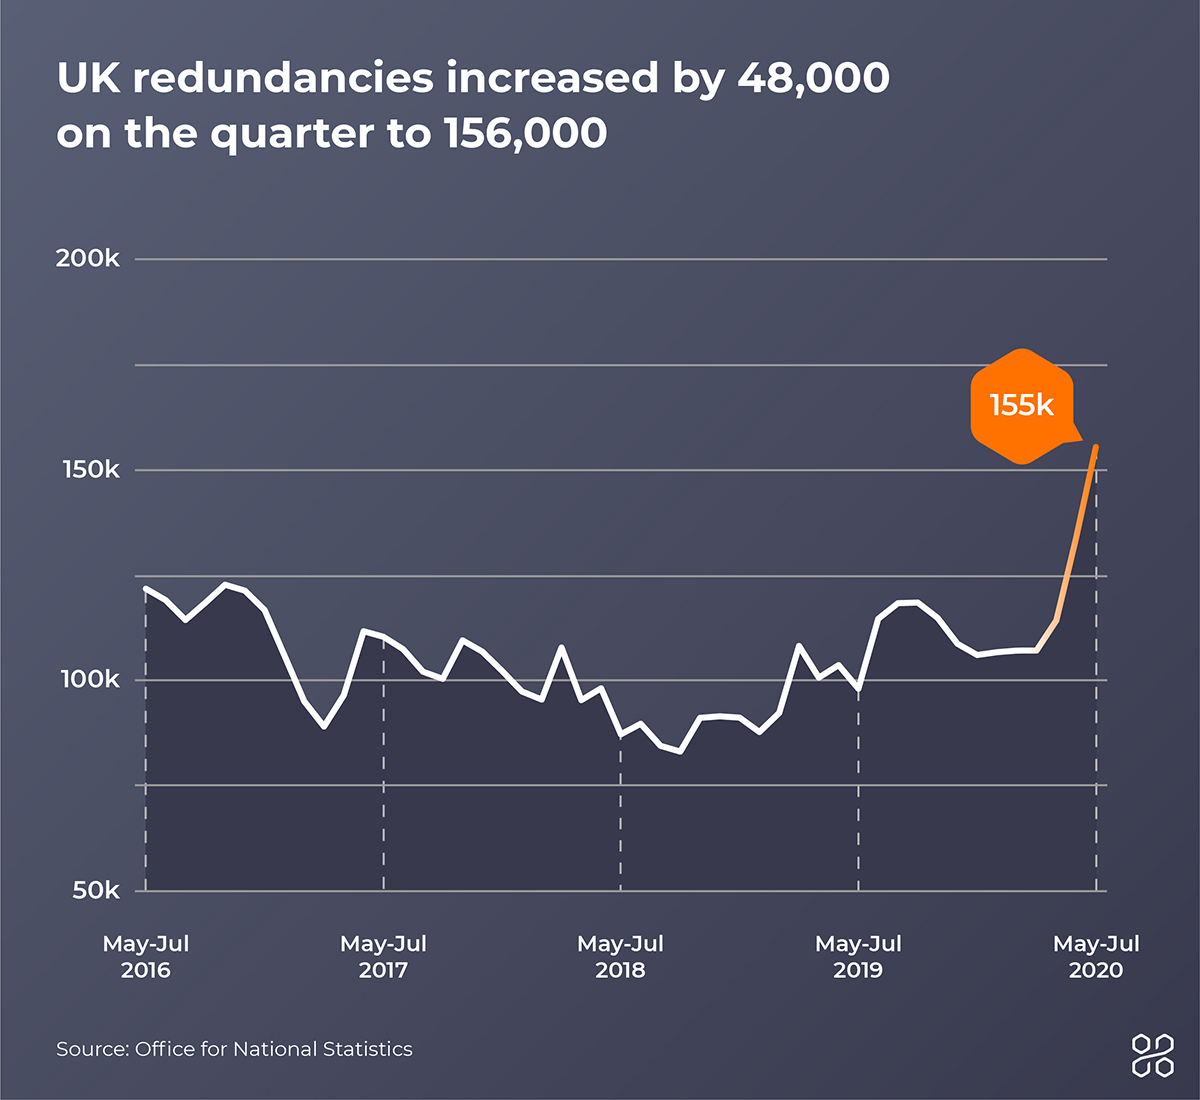 a chart showing the increase in UK redundancies from 2016 to 2020